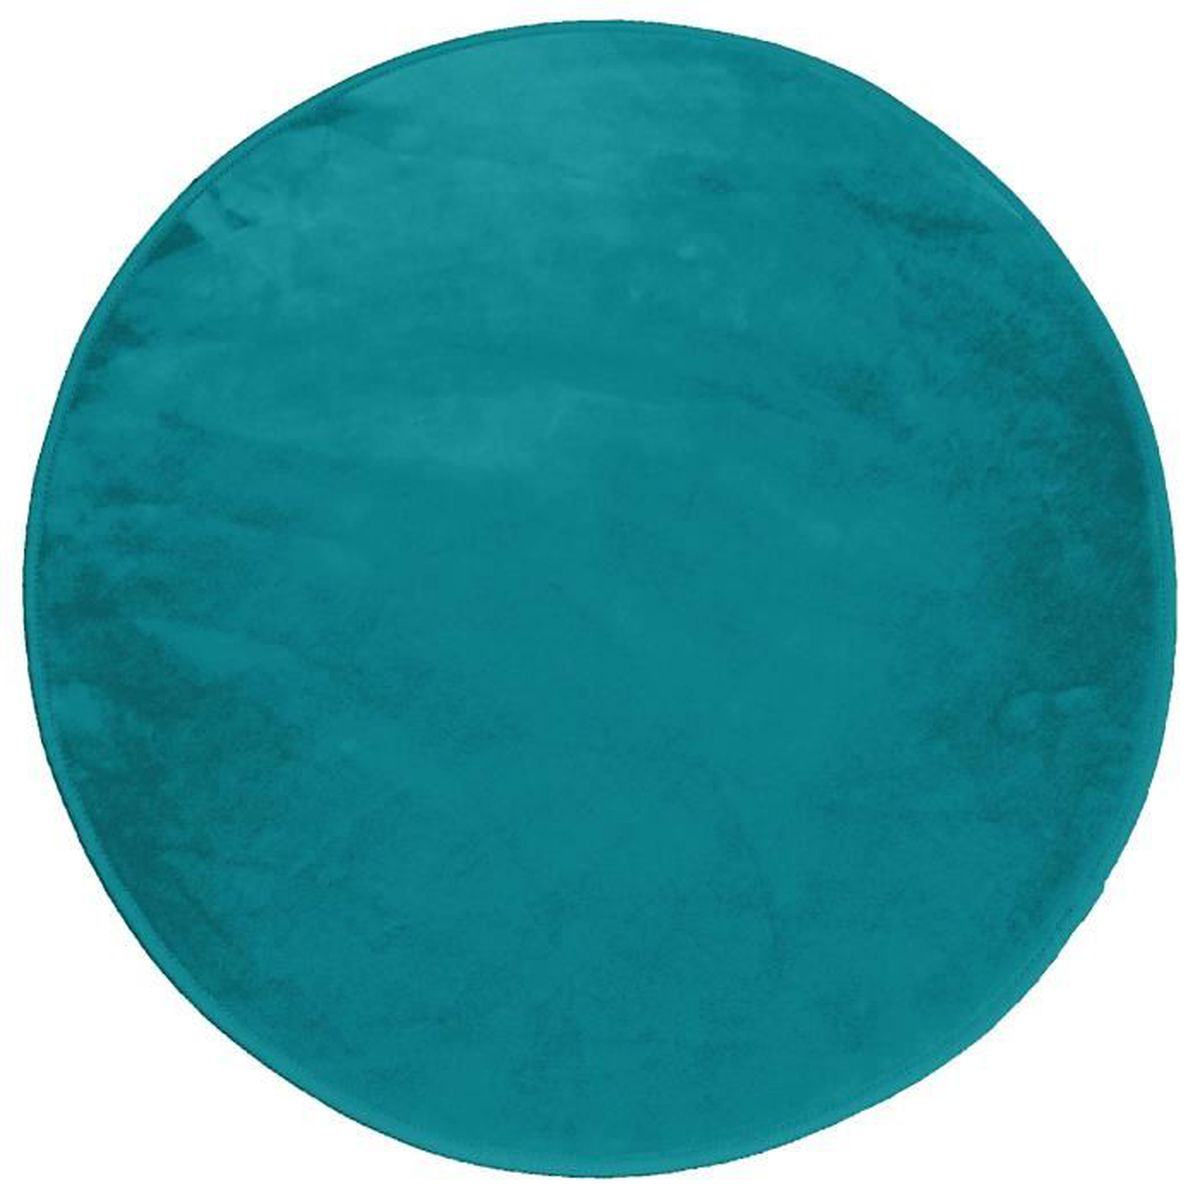 tapis rond 0 90 cm velours uni louna bleu lagon achat vente tapis de couloir soldes d s. Black Bedroom Furniture Sets. Home Design Ideas